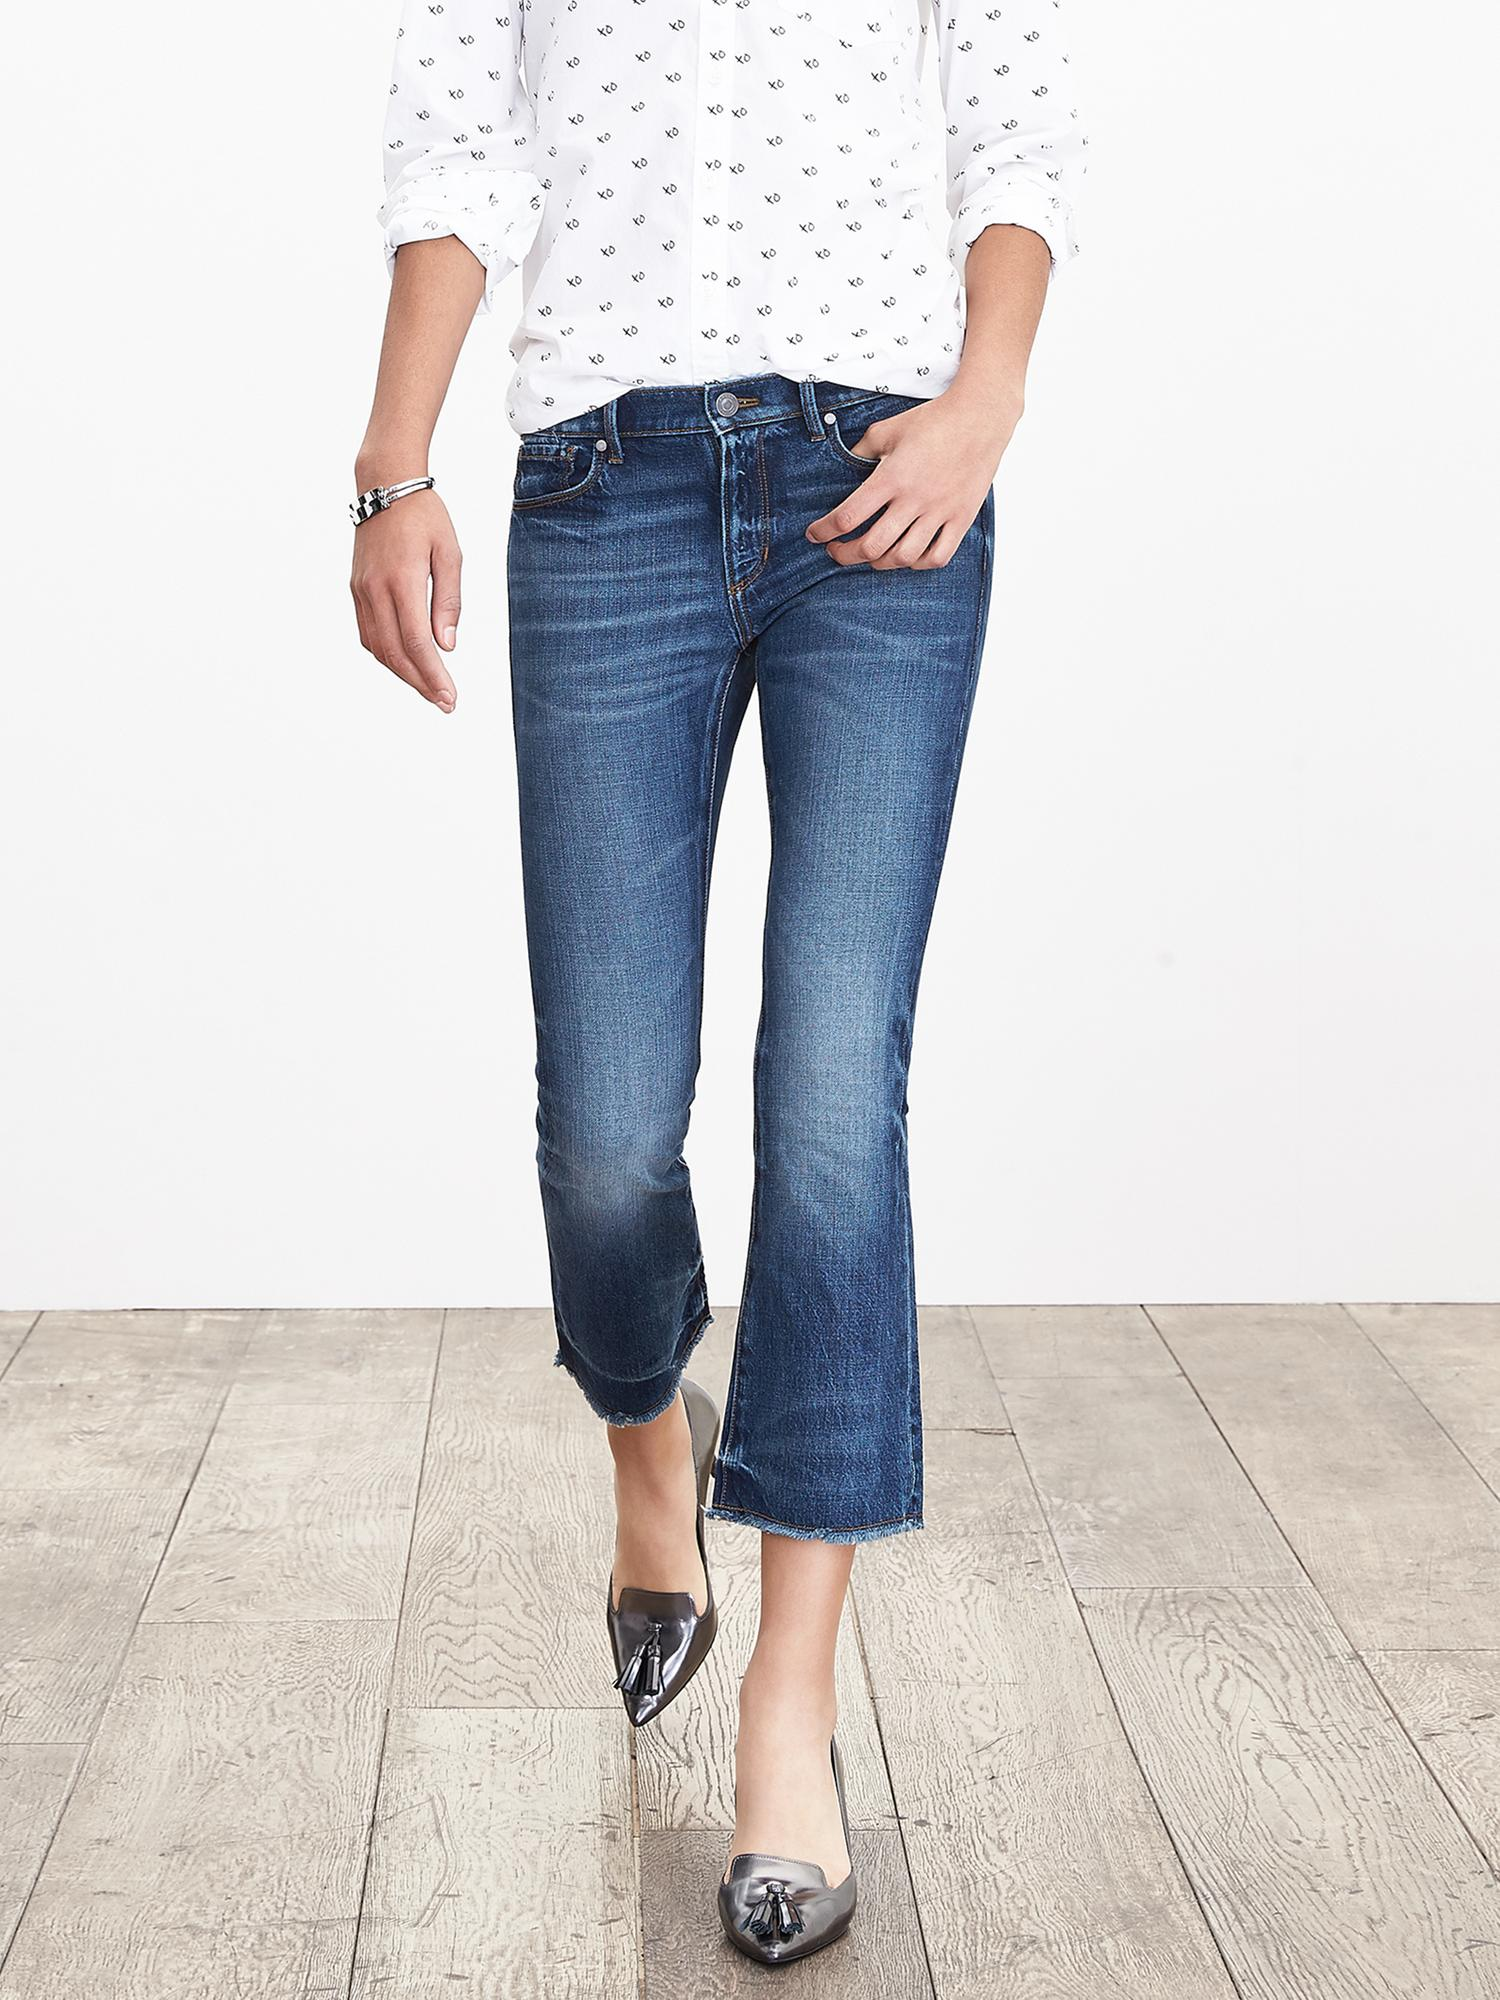 Cropped Kick Flare Jeans for Petites? – Small Town Threads